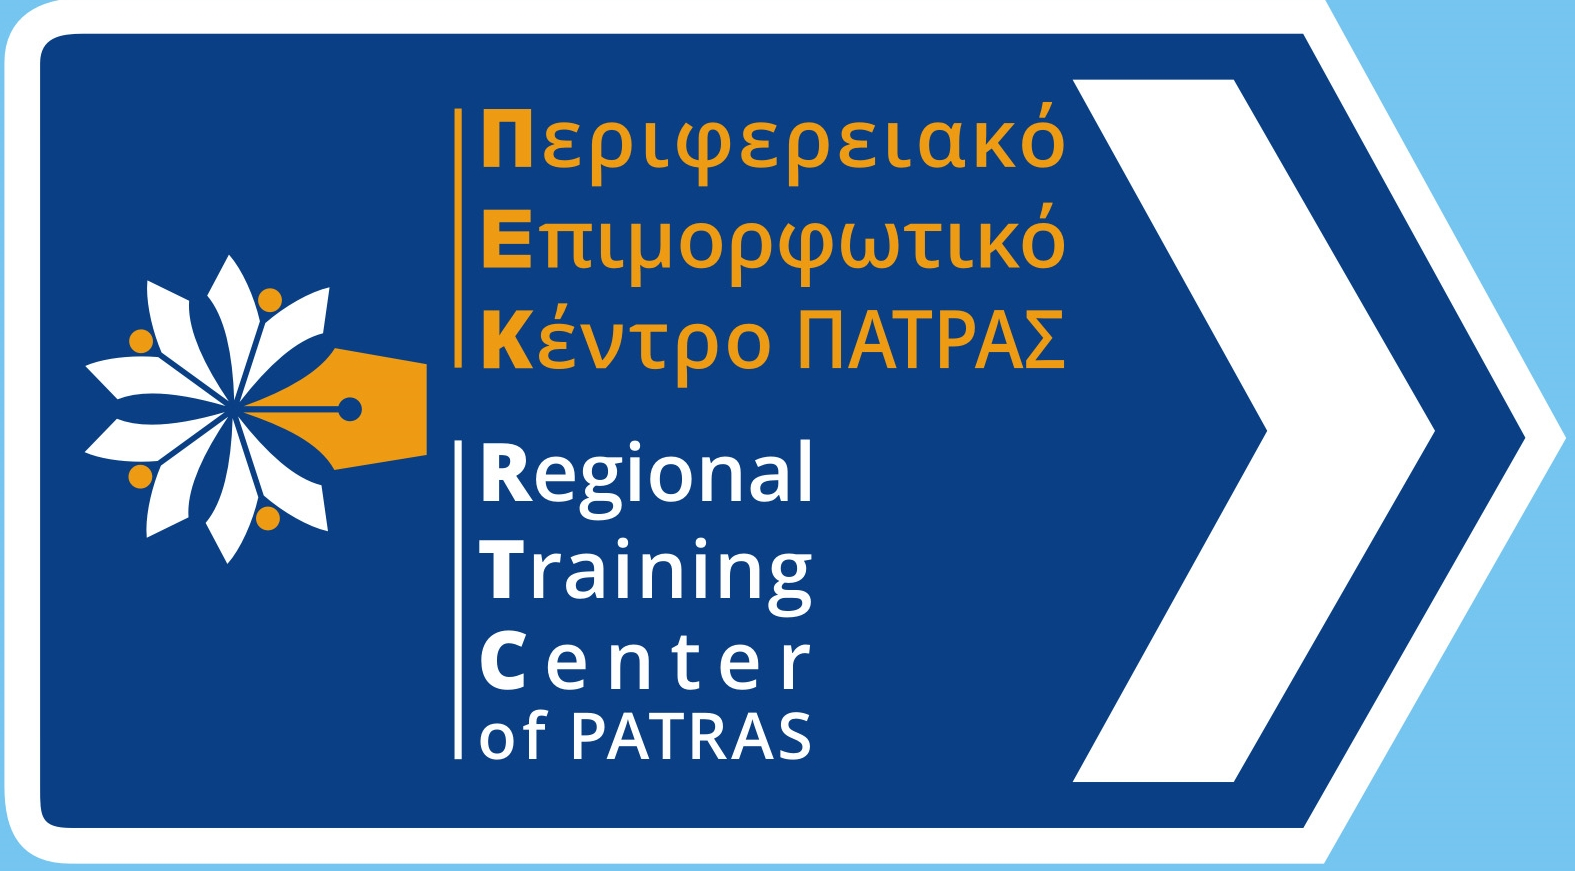 PEK_Patras_Road_sign_Right_2